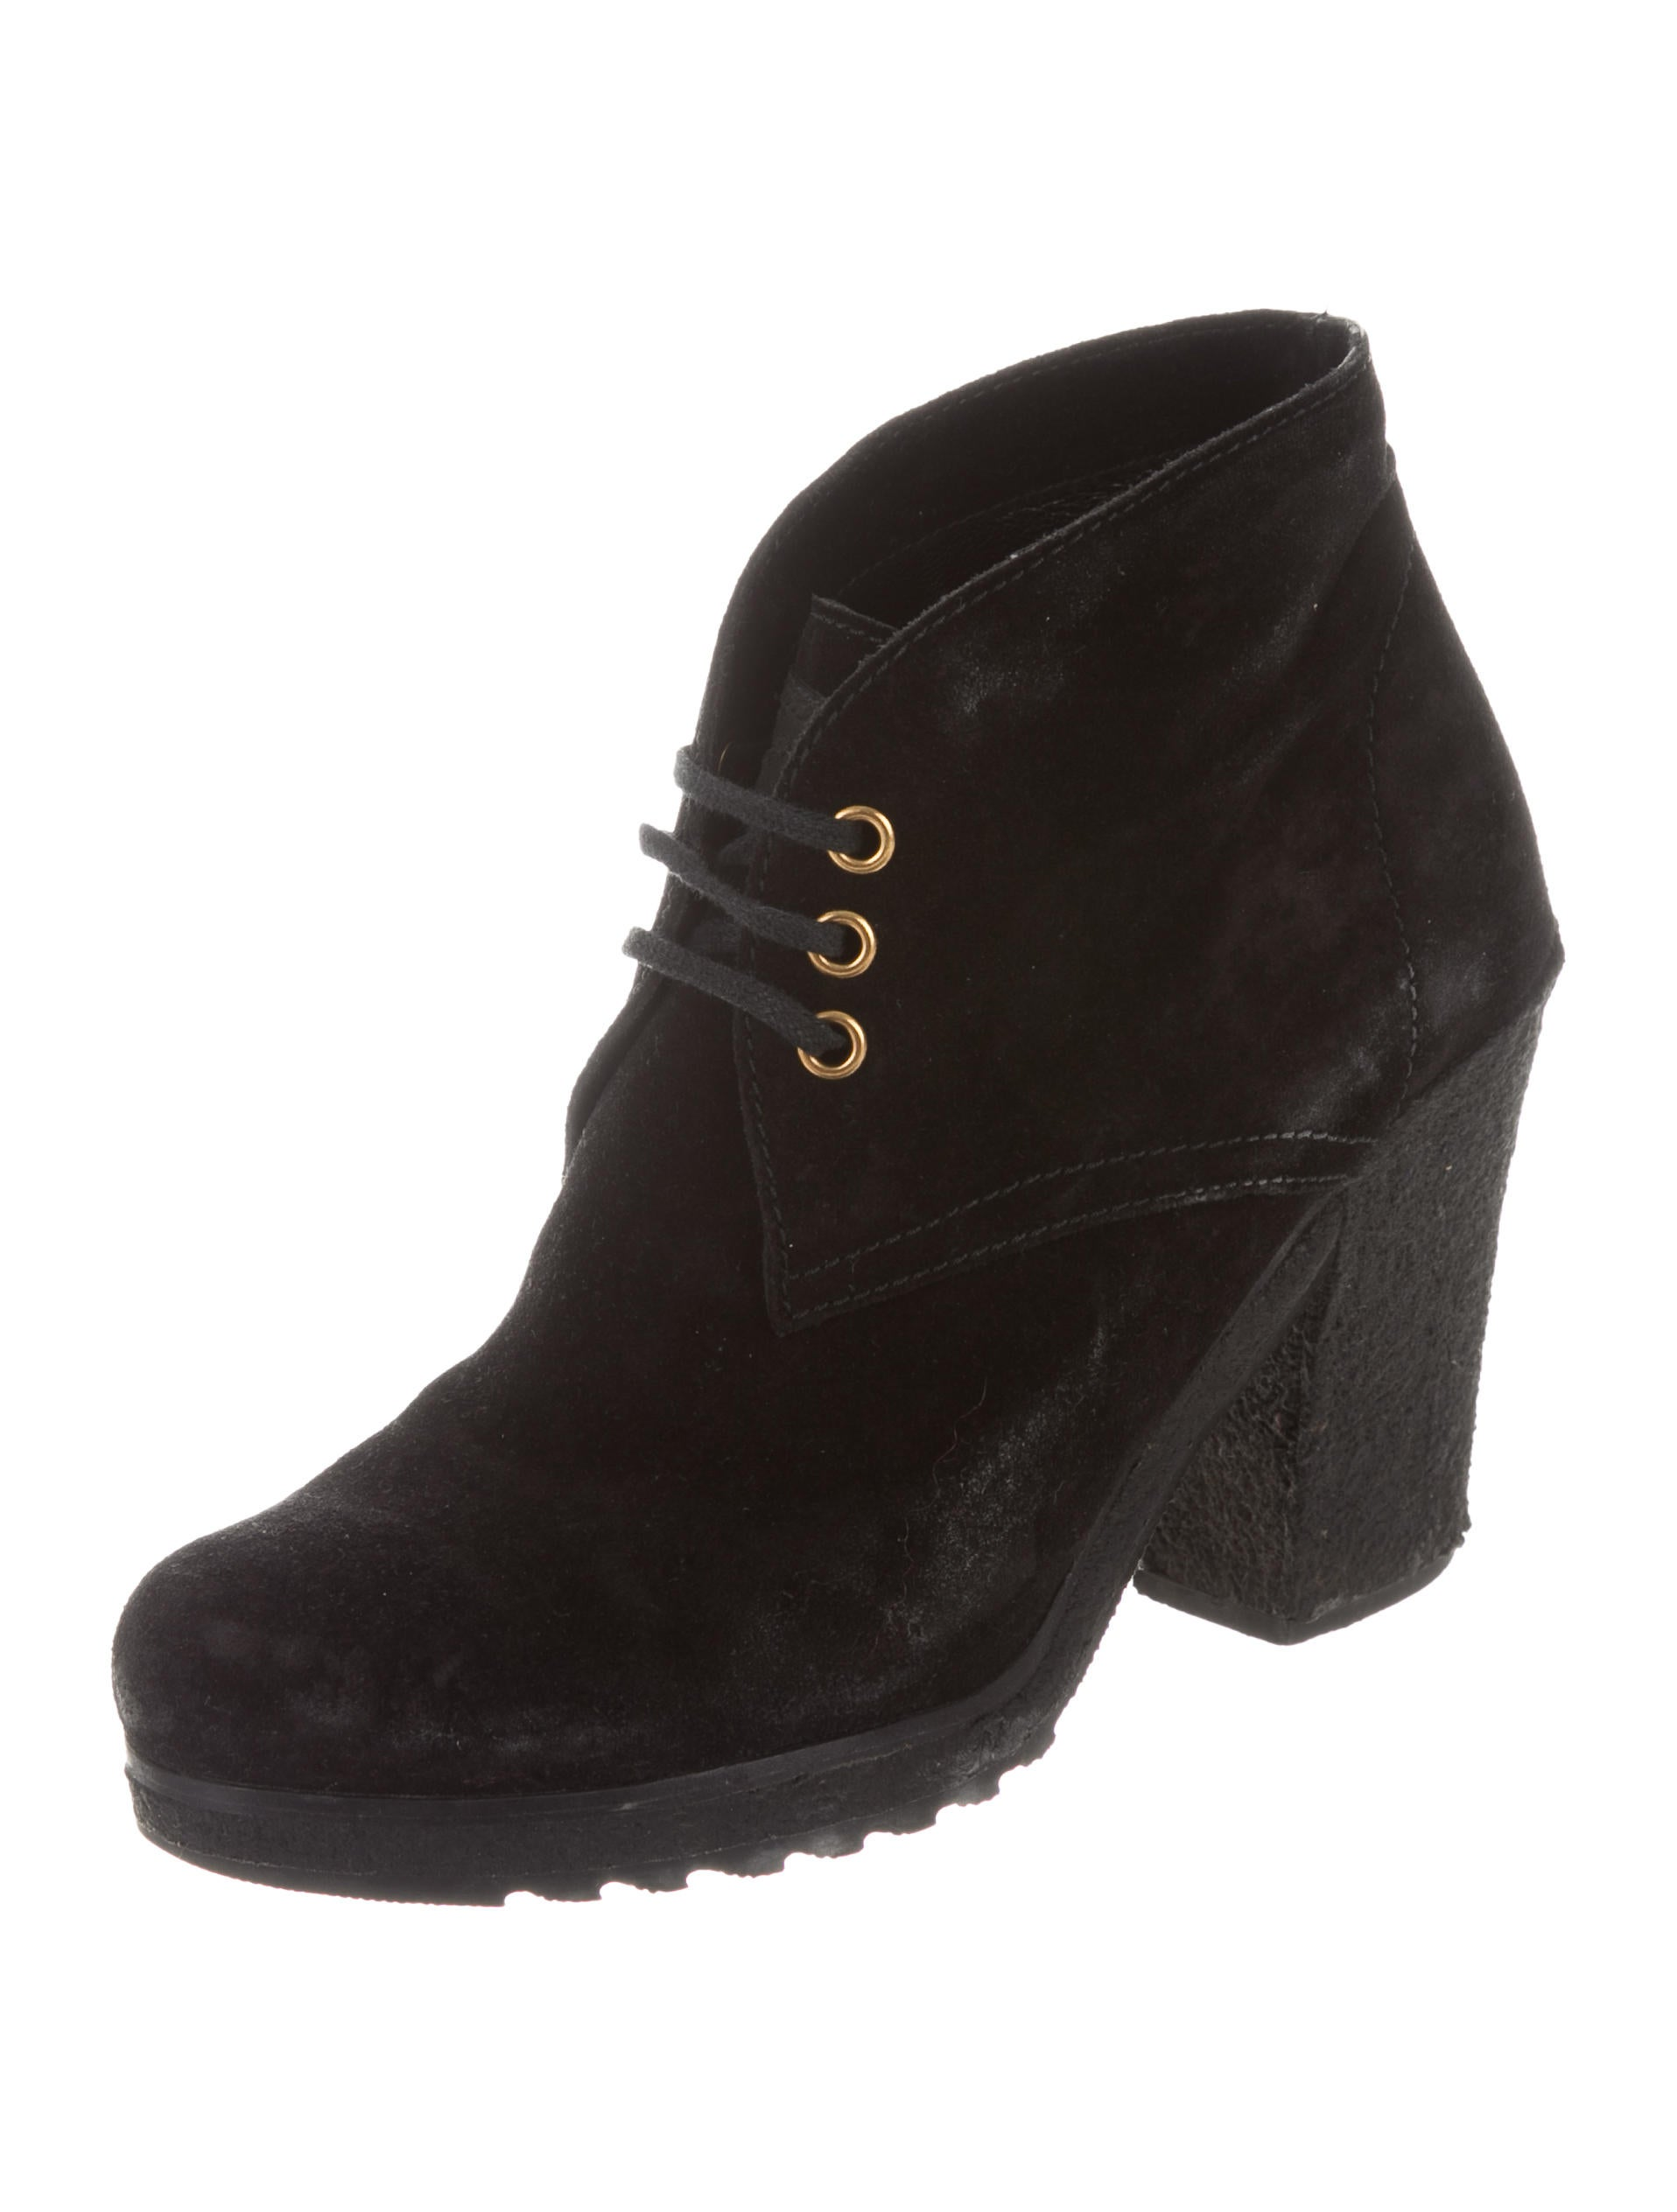 Prada Sport Suede Lace-Up Booties cheap real eastbay 3vLlXa